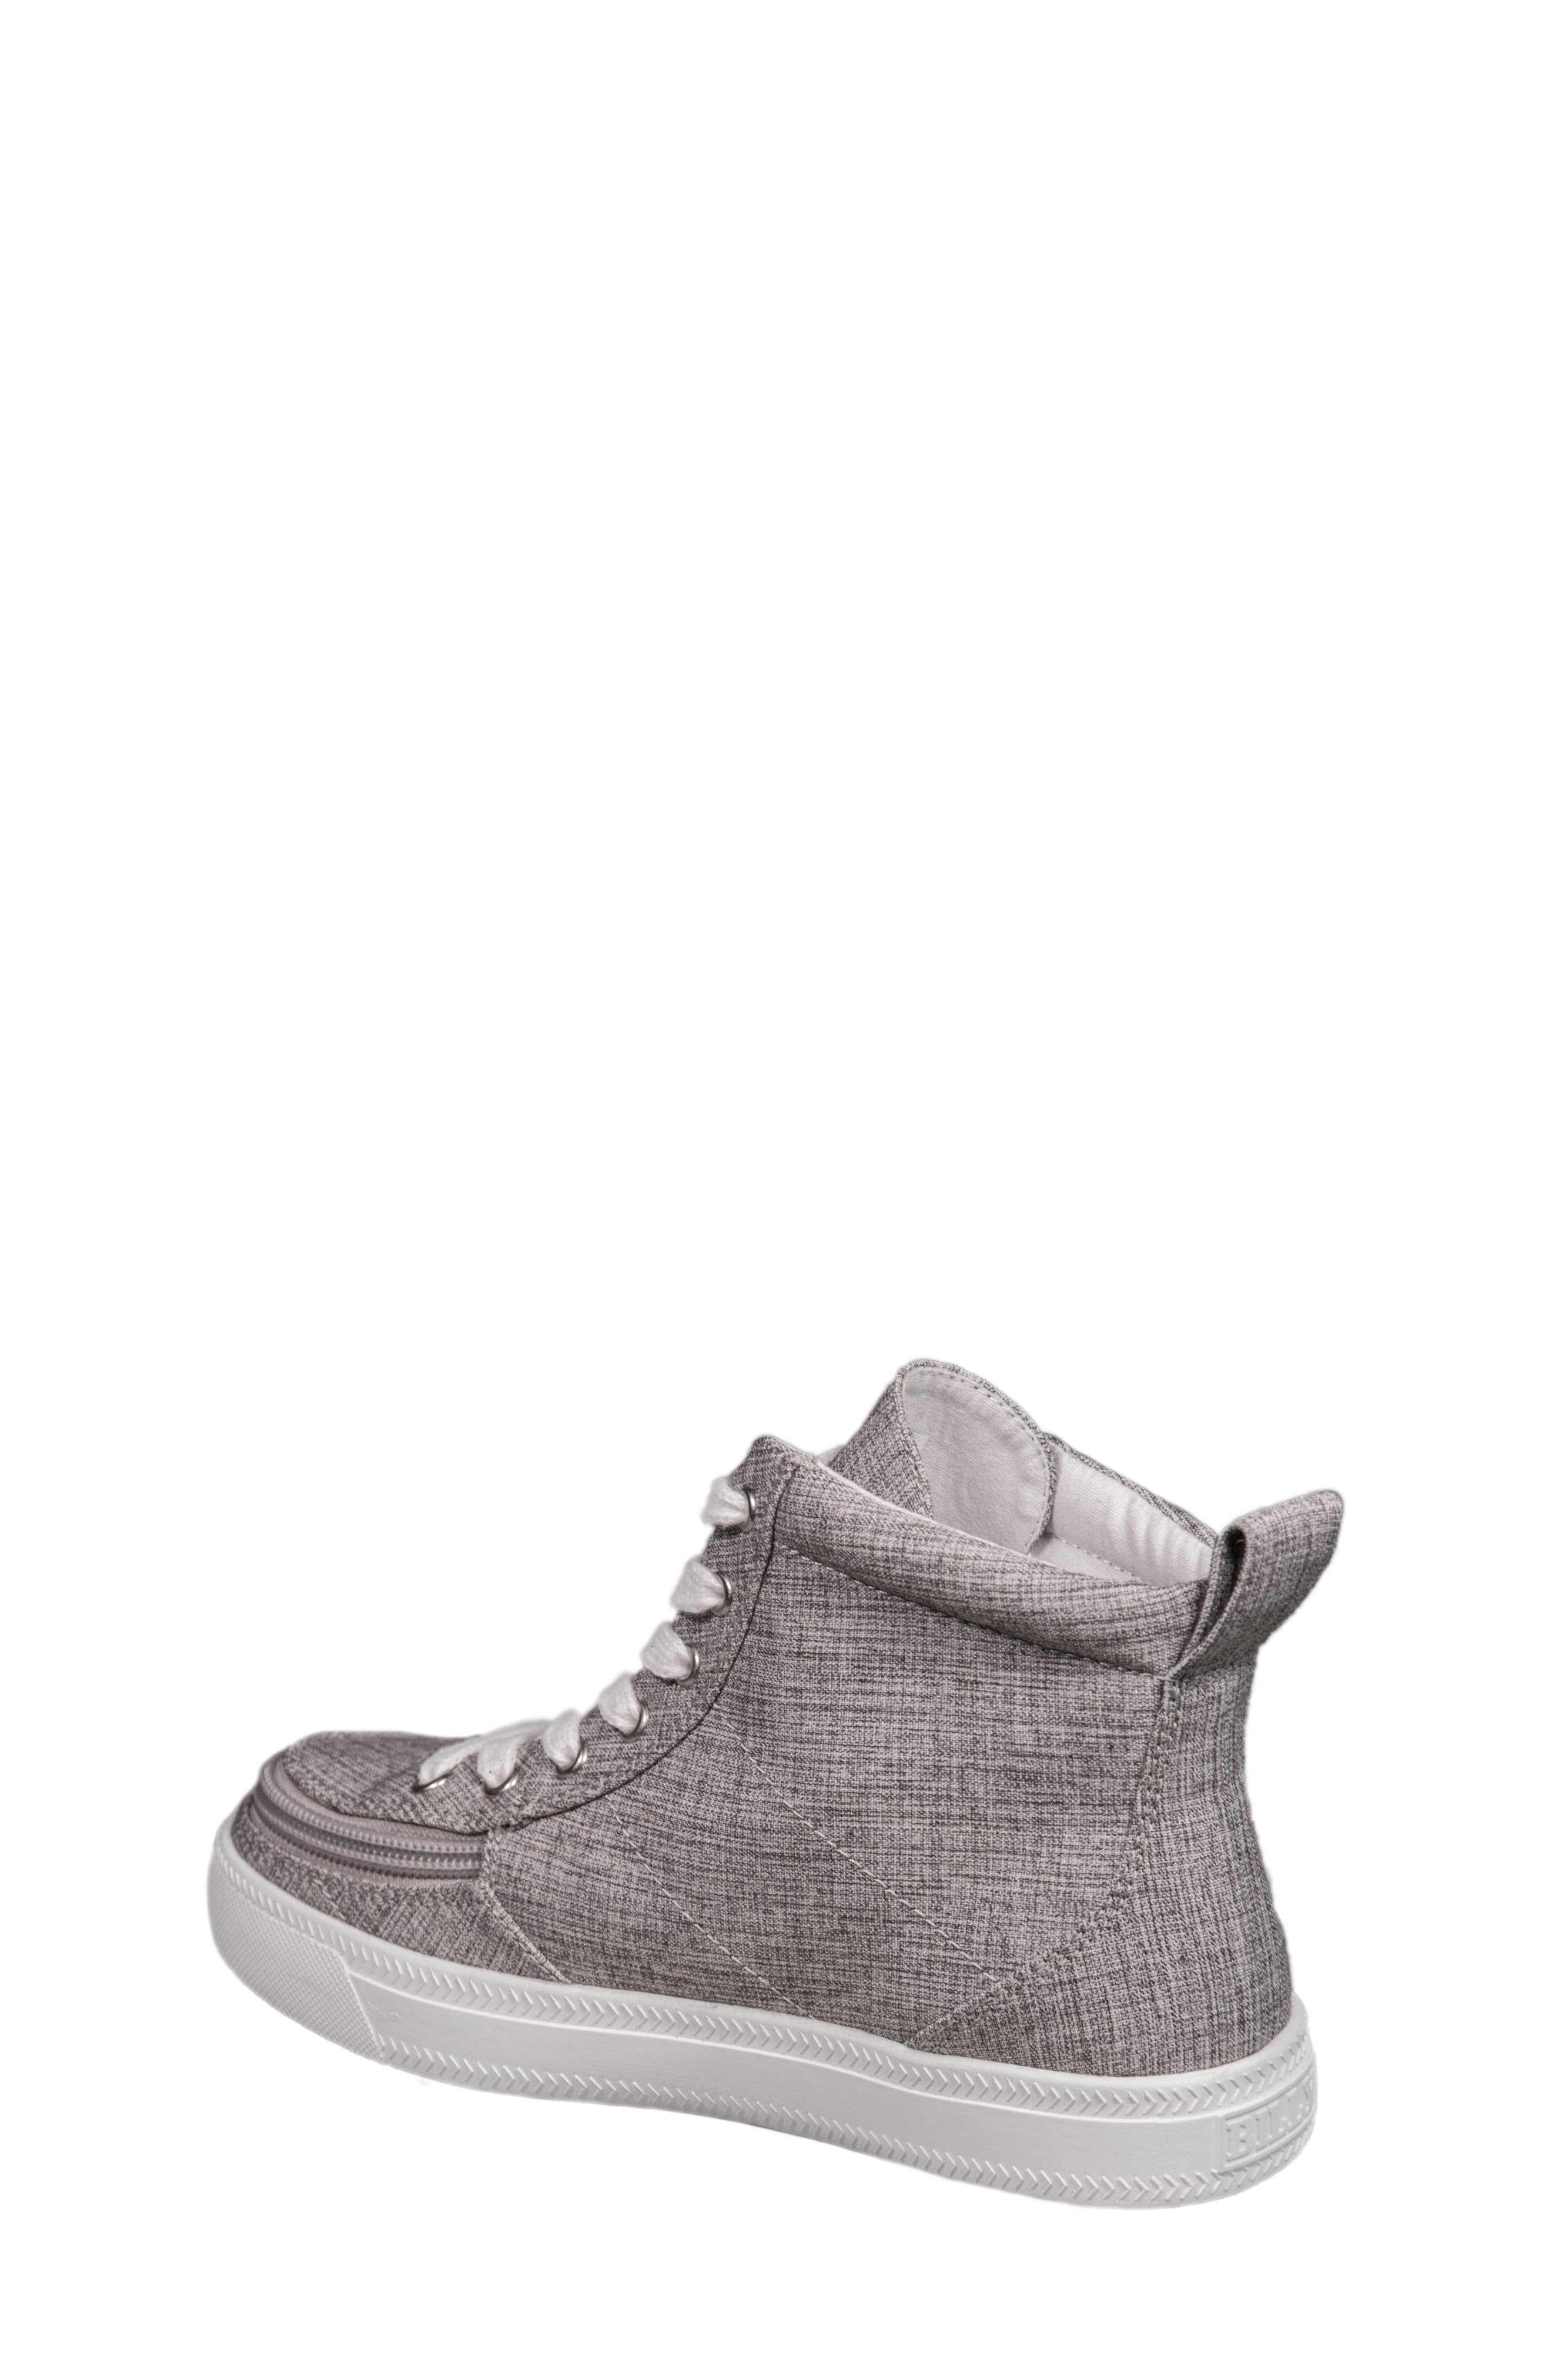 Zip Around High Top Sneaker,                             Alternate thumbnail 2, color,                             Grey Jersey